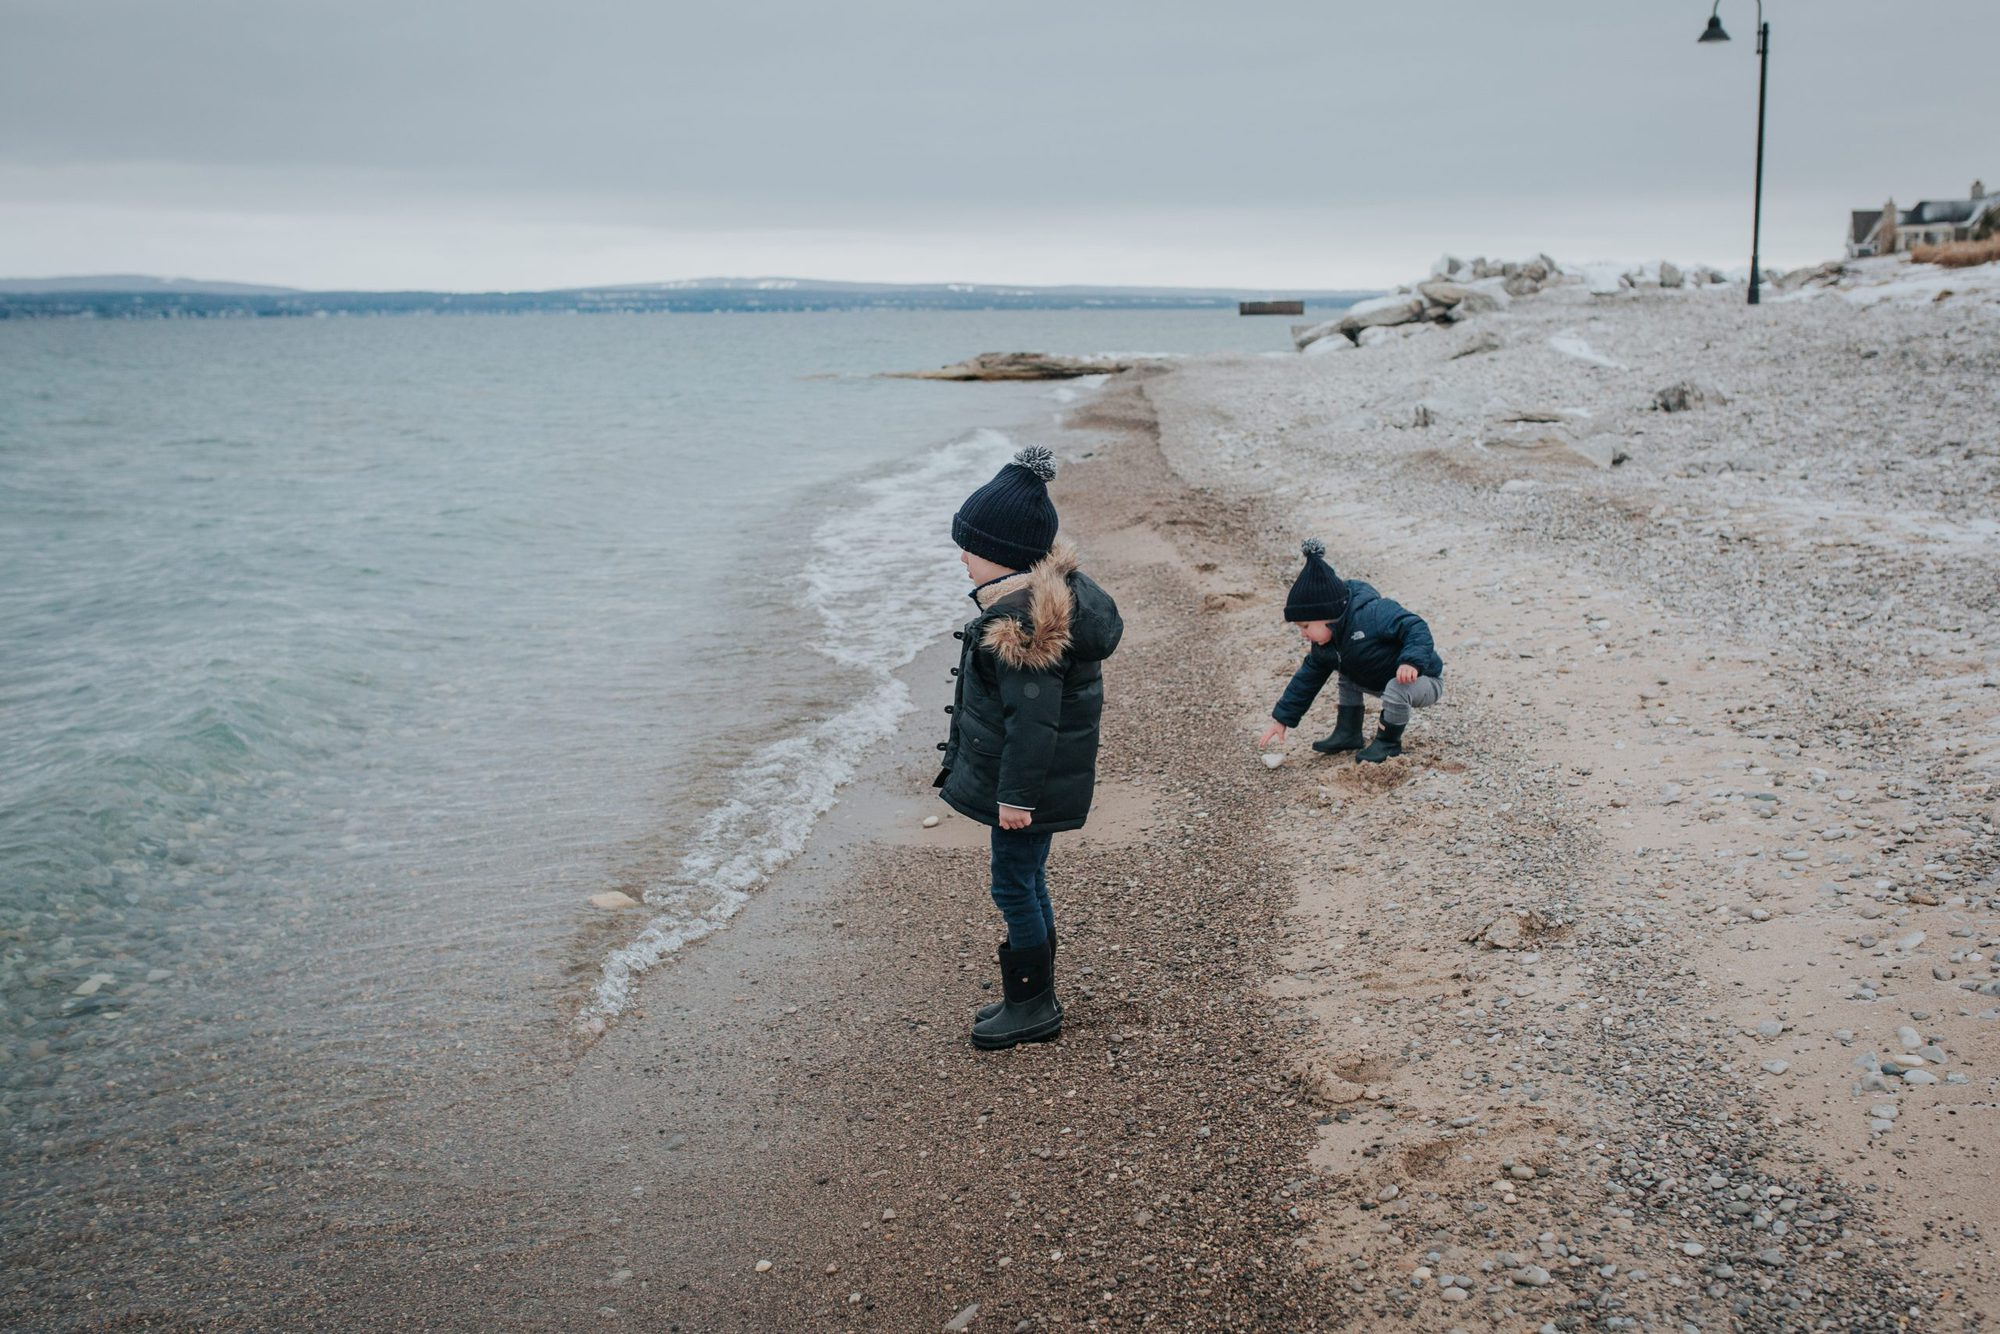 little boys skipping stones on Lake Michigan in winter |Inn at Bay Harbor by popular Michigan travel blog, The House of Navy: image of two little boys standing on a rocky beach next to some water.